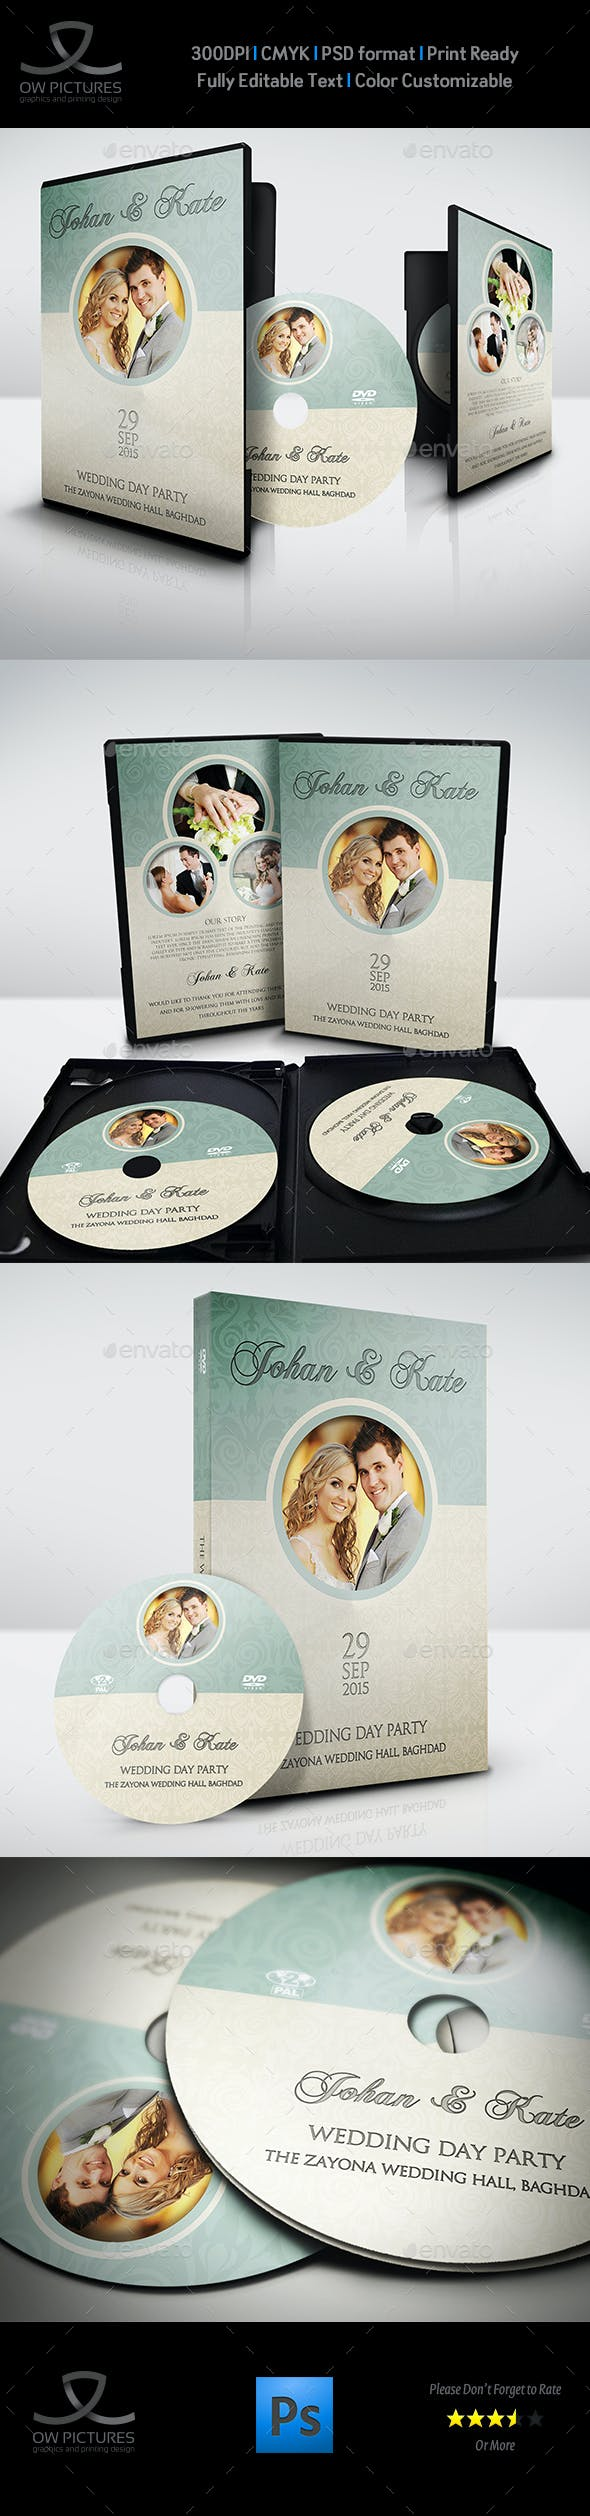 wedding dvd cover and dvd label template vol 8 by owpictures